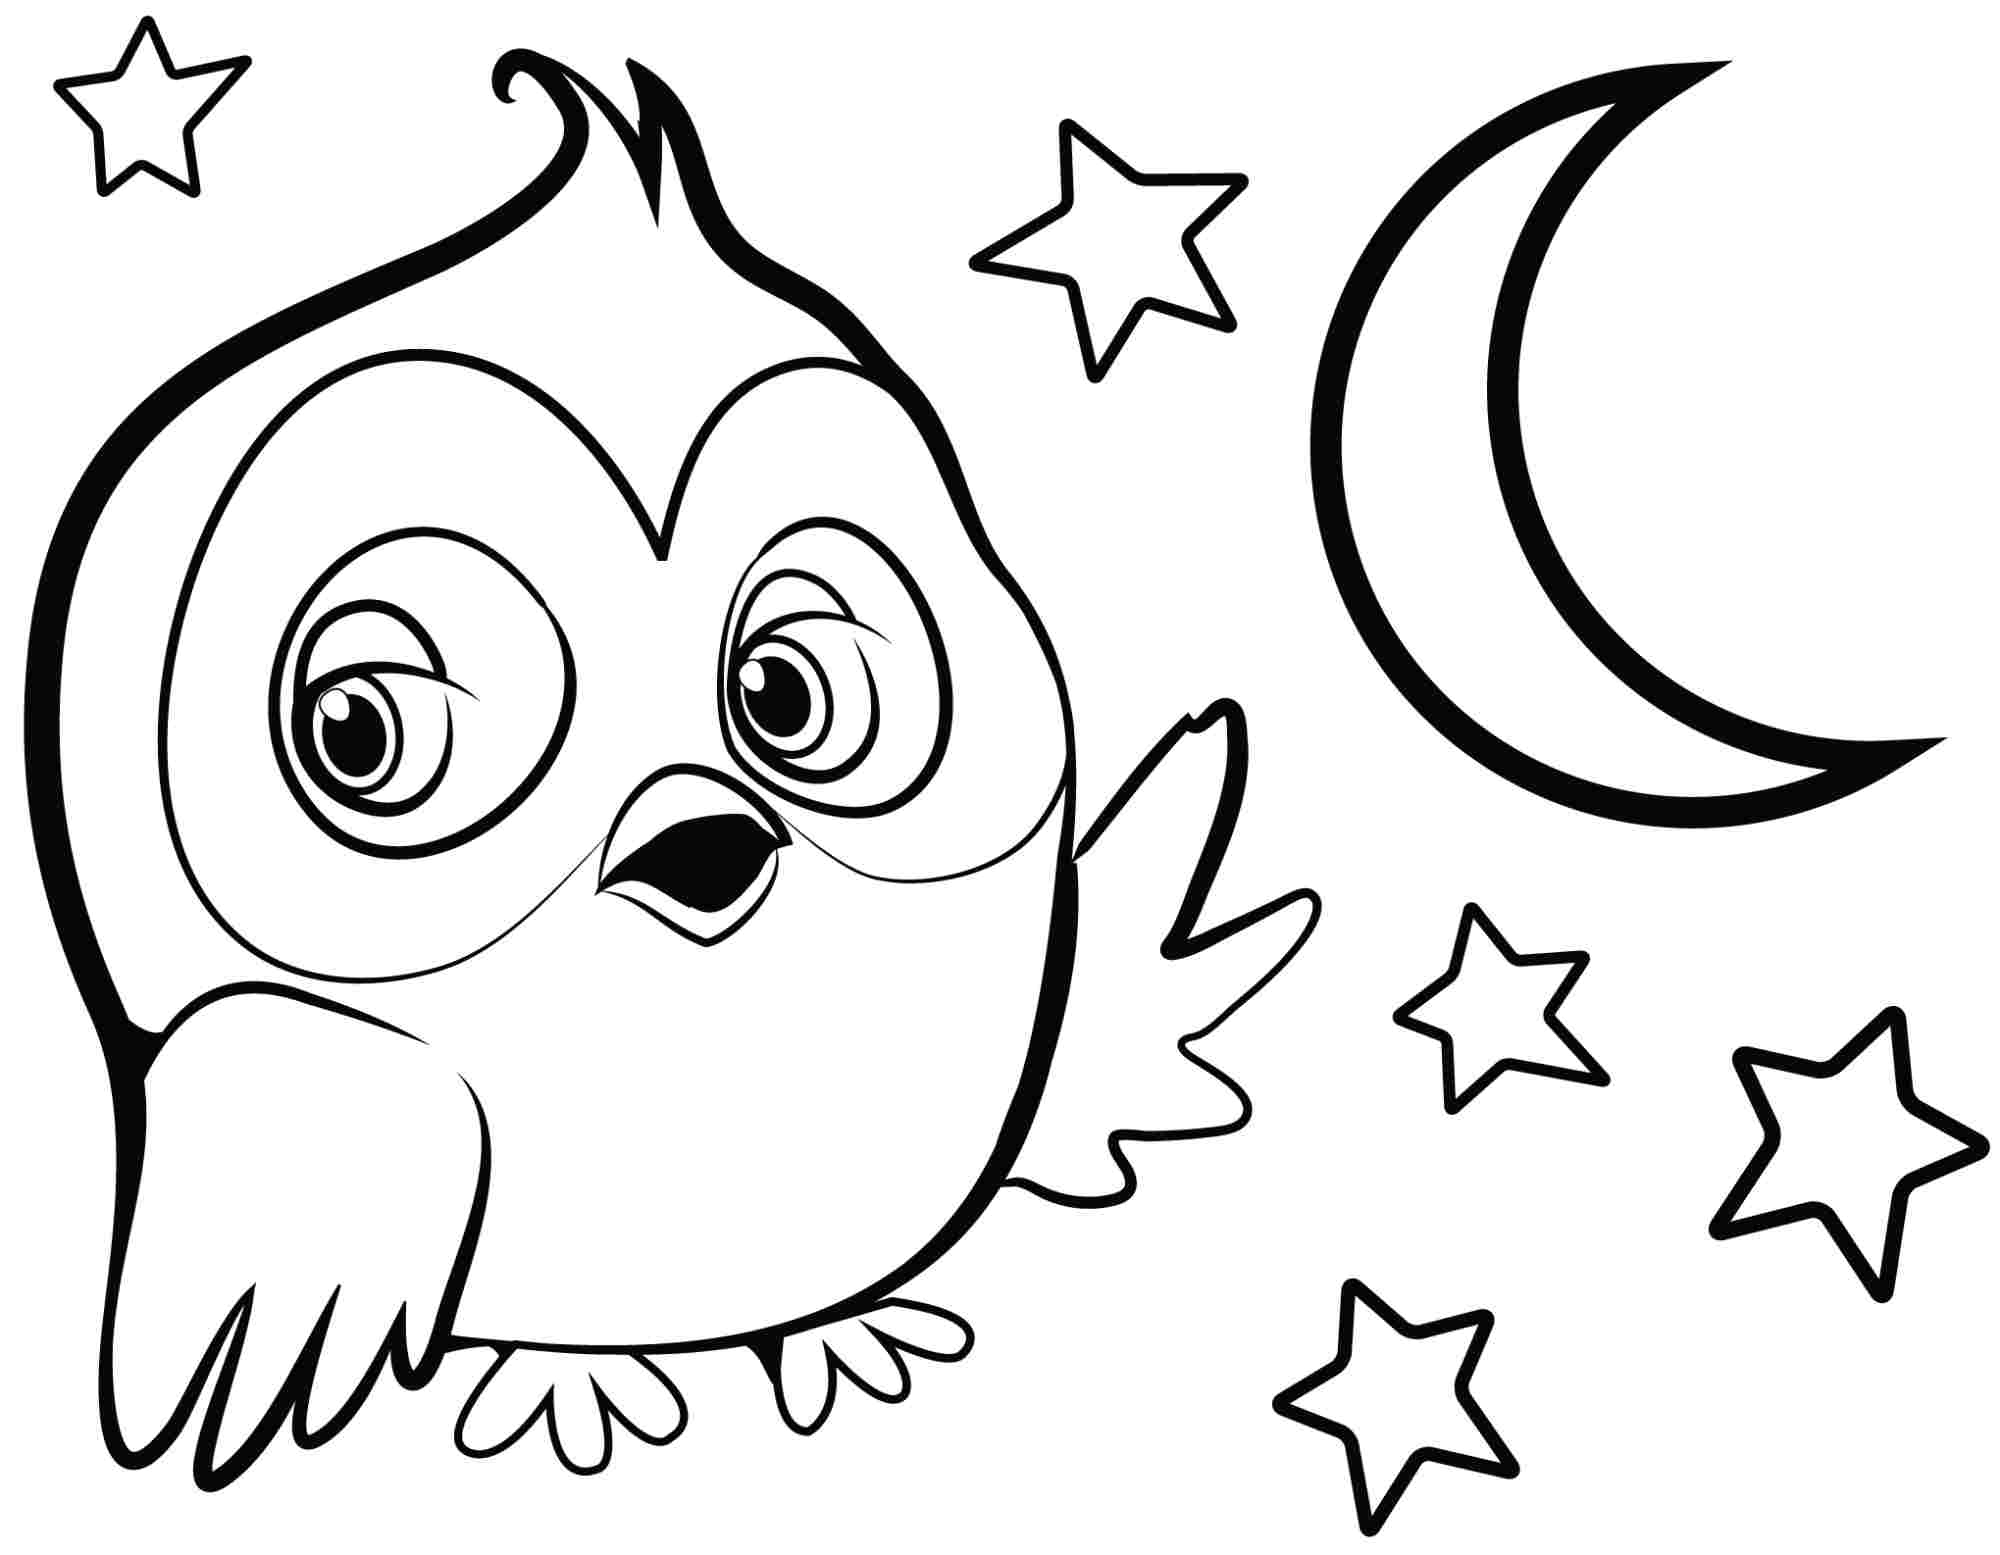 Easy Animal Coloring Pages For Kids At Getdrawings